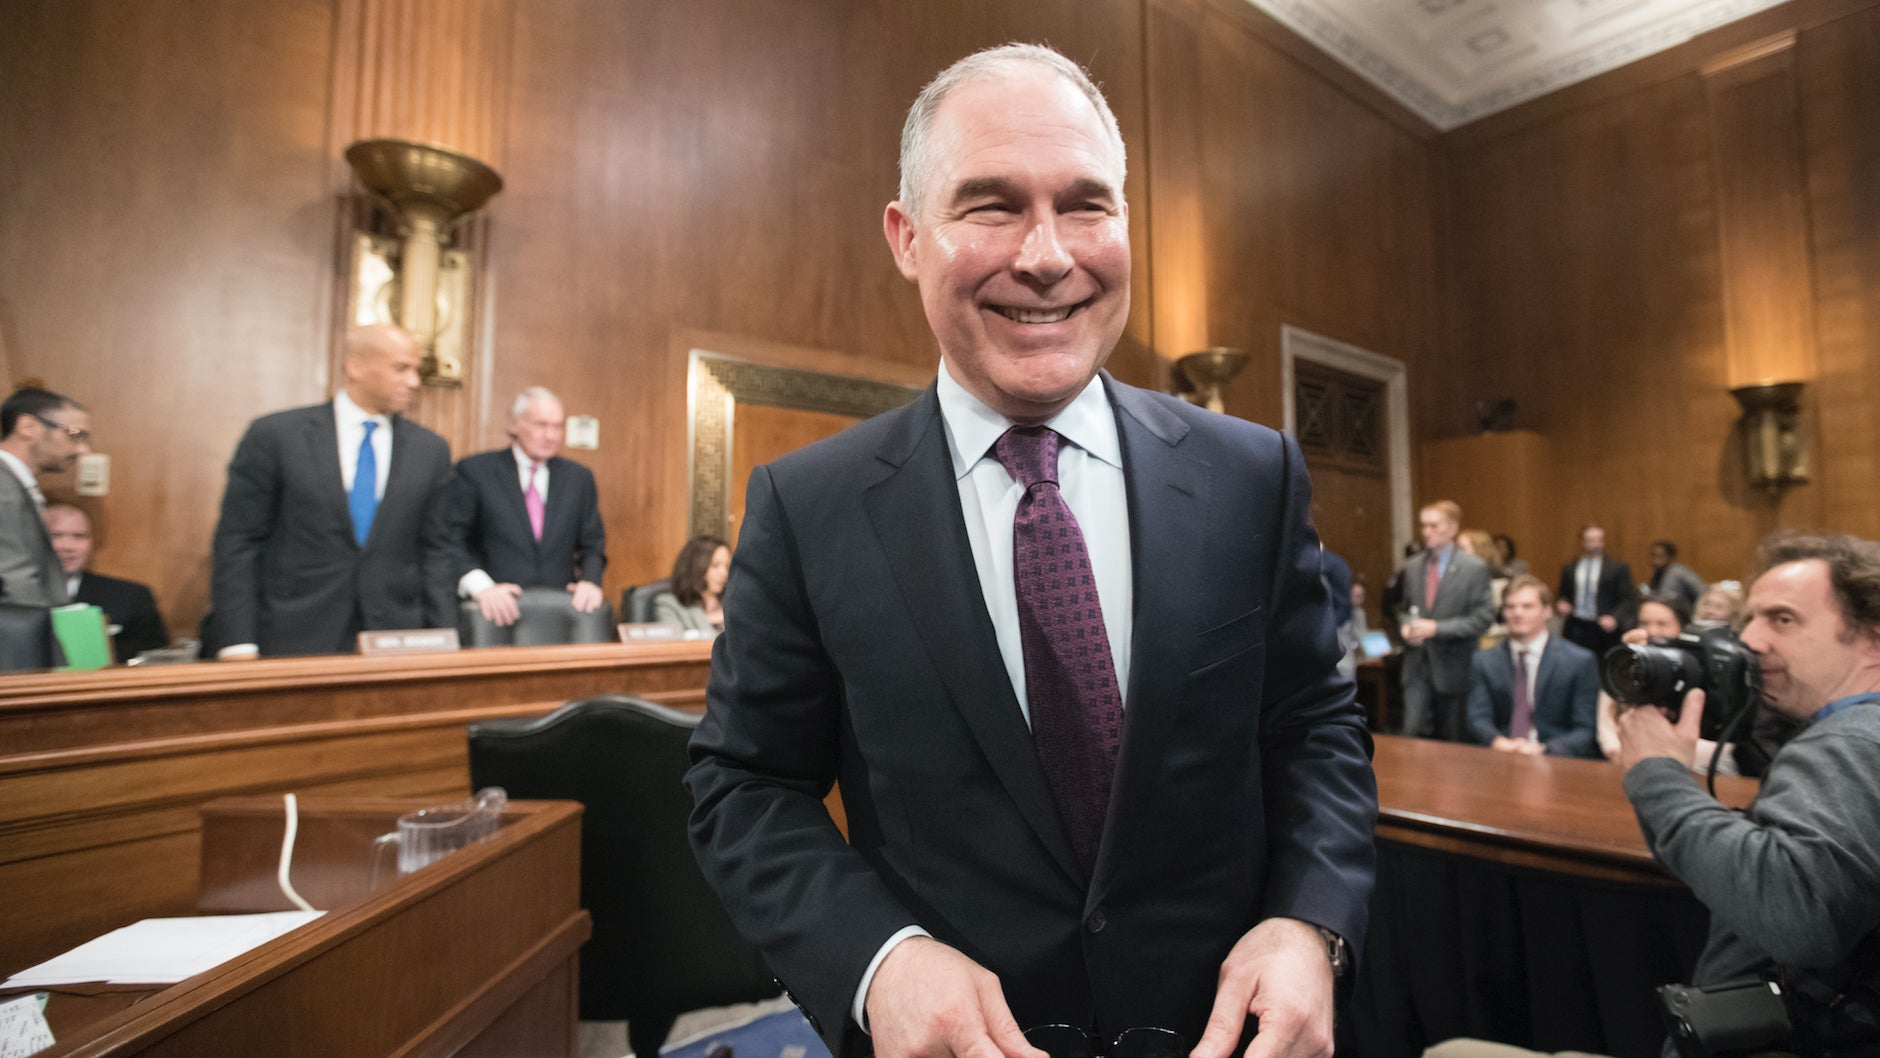 Three Ways New EPA Head Scott Pruitt Will Dismantle Environmental Protection